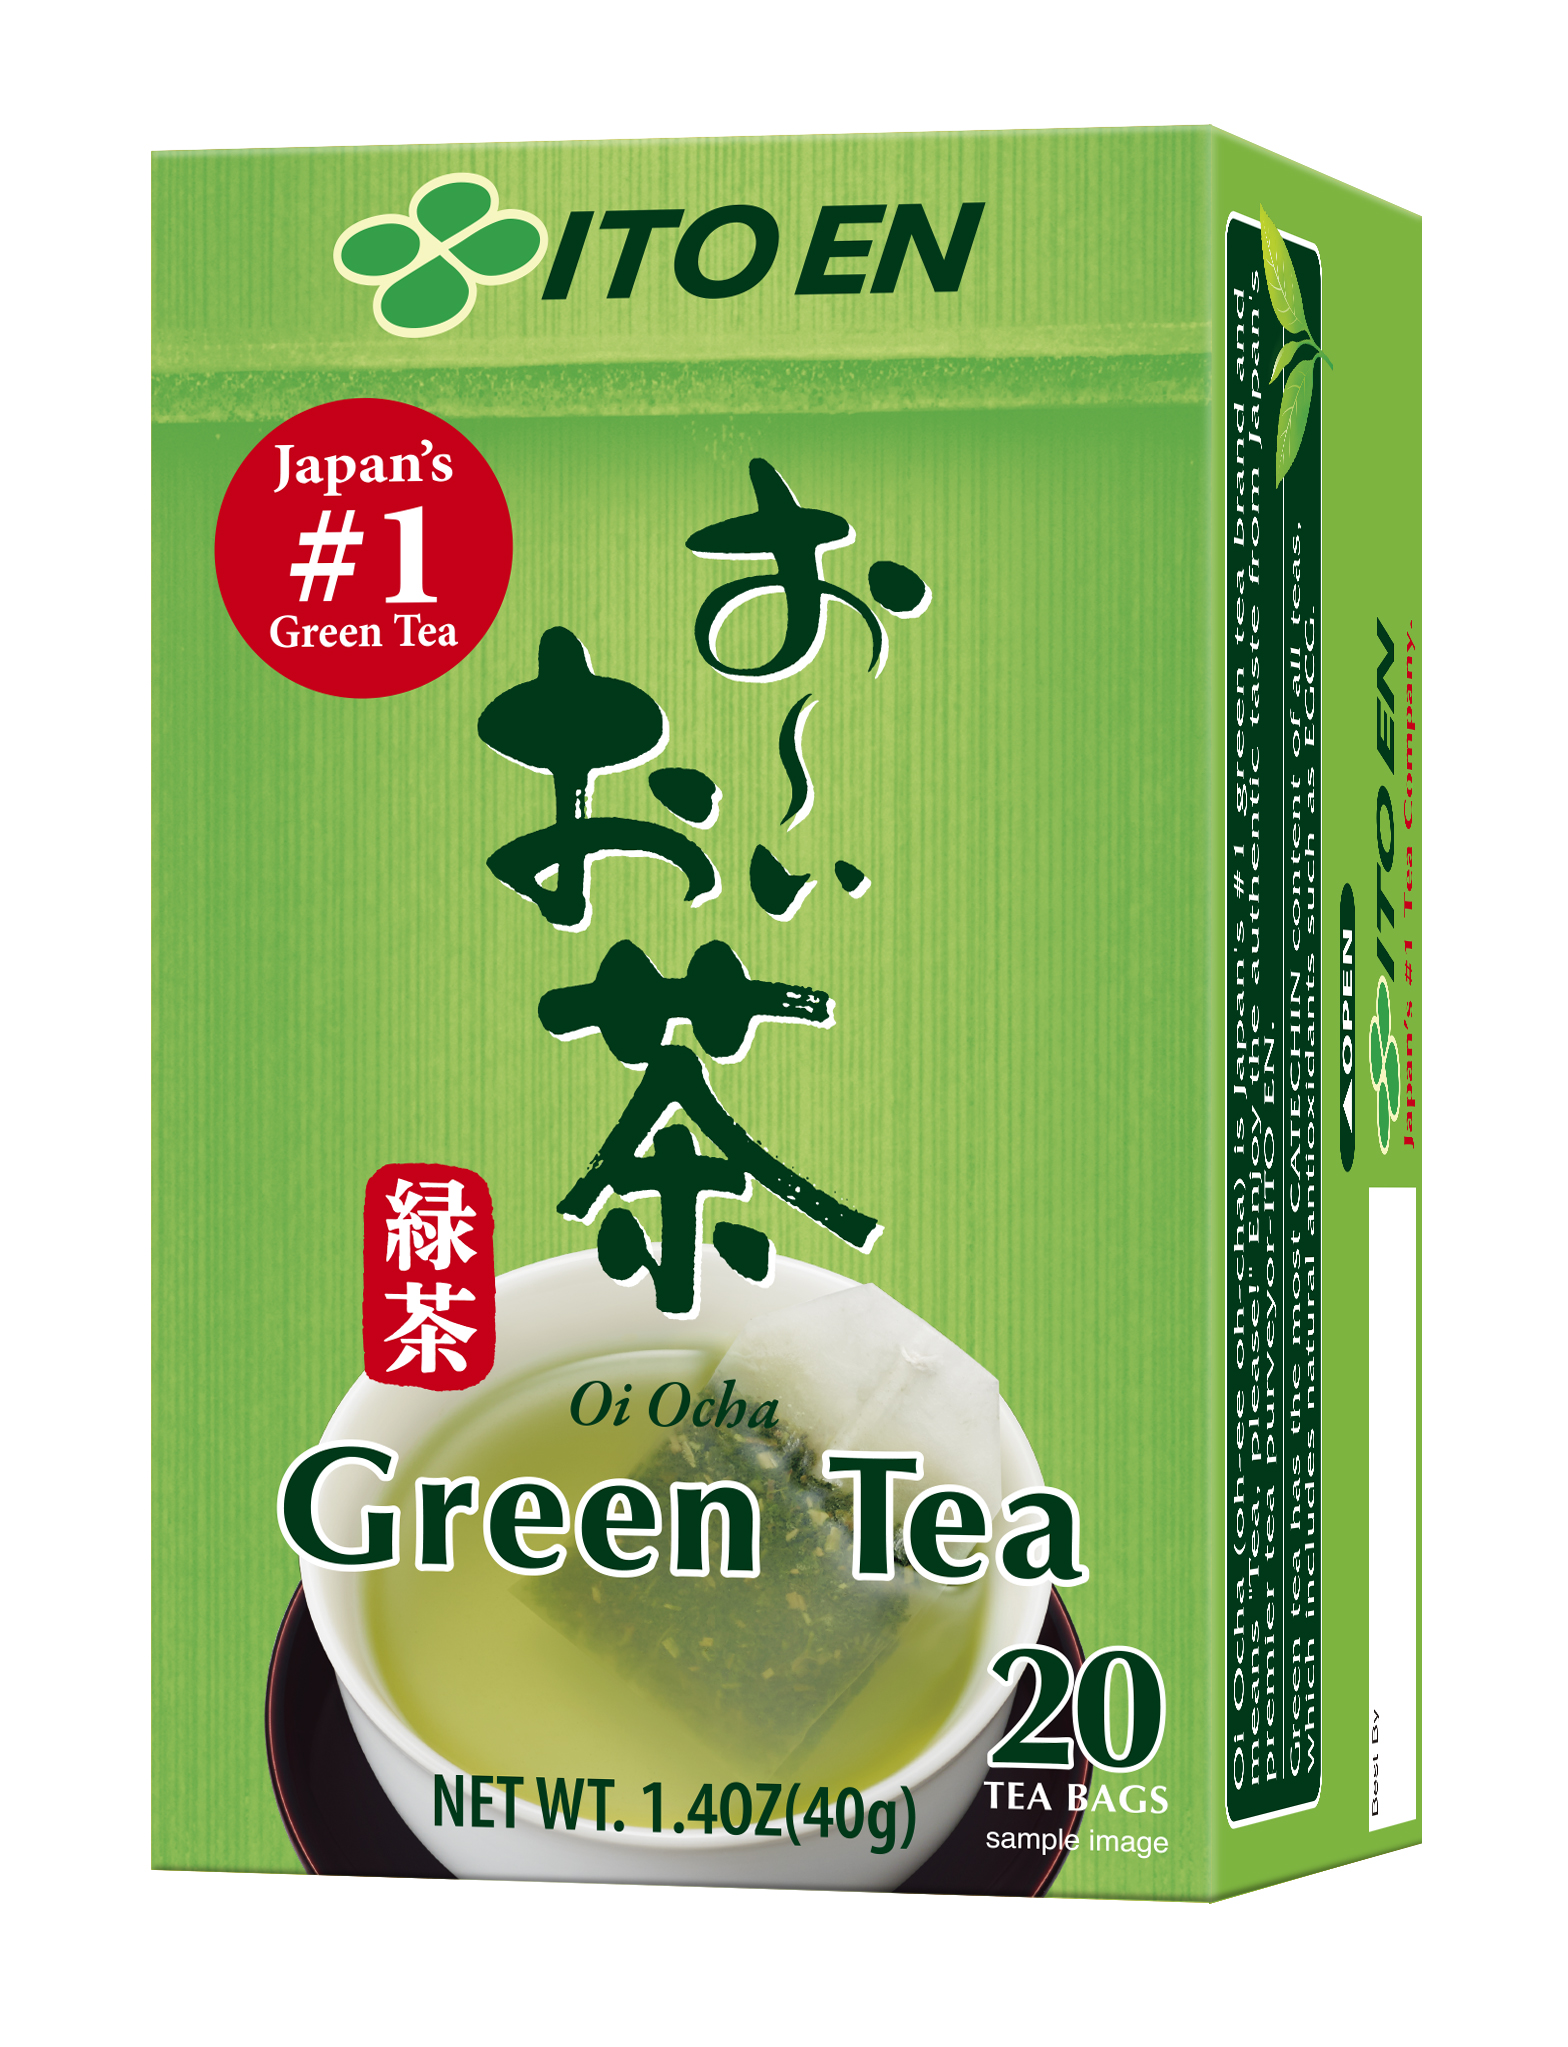 Oi Ocha Green Tea 20s